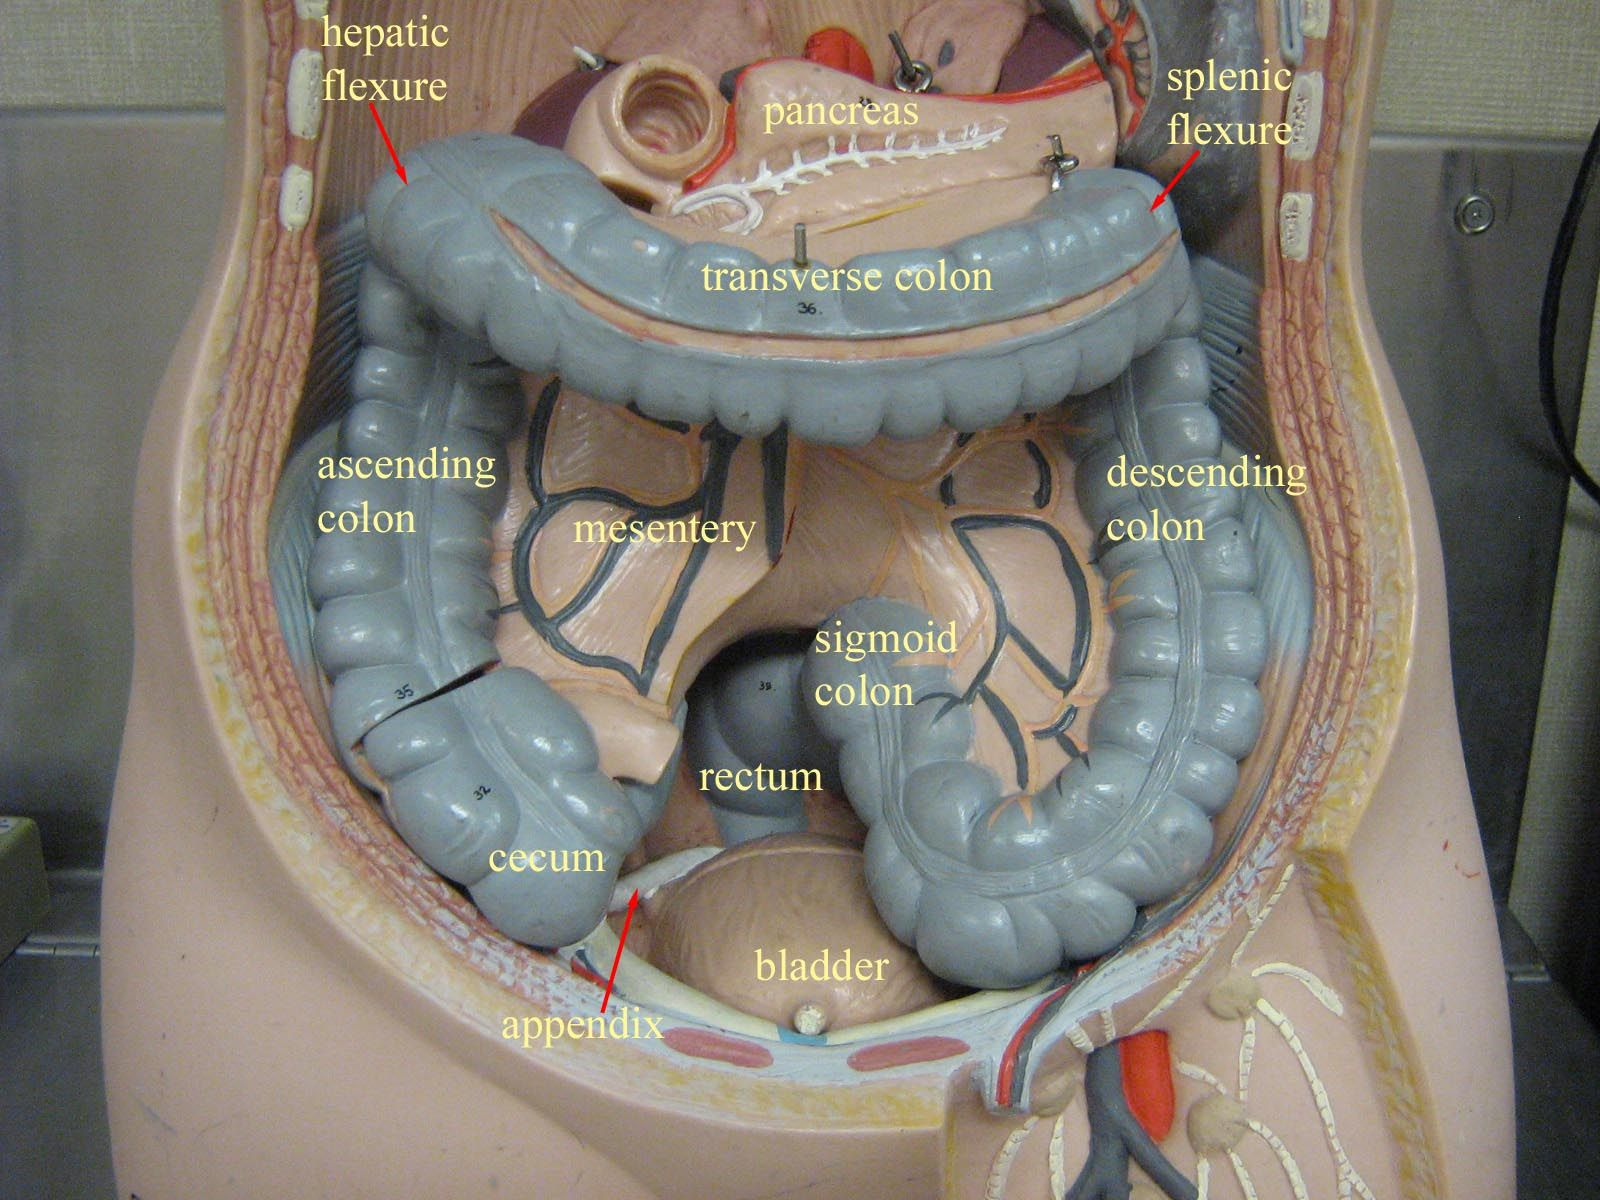 large intestine anatomy diagram labeled 2002 ford windstar serpentine belt abdominal cavity no liver stomach small